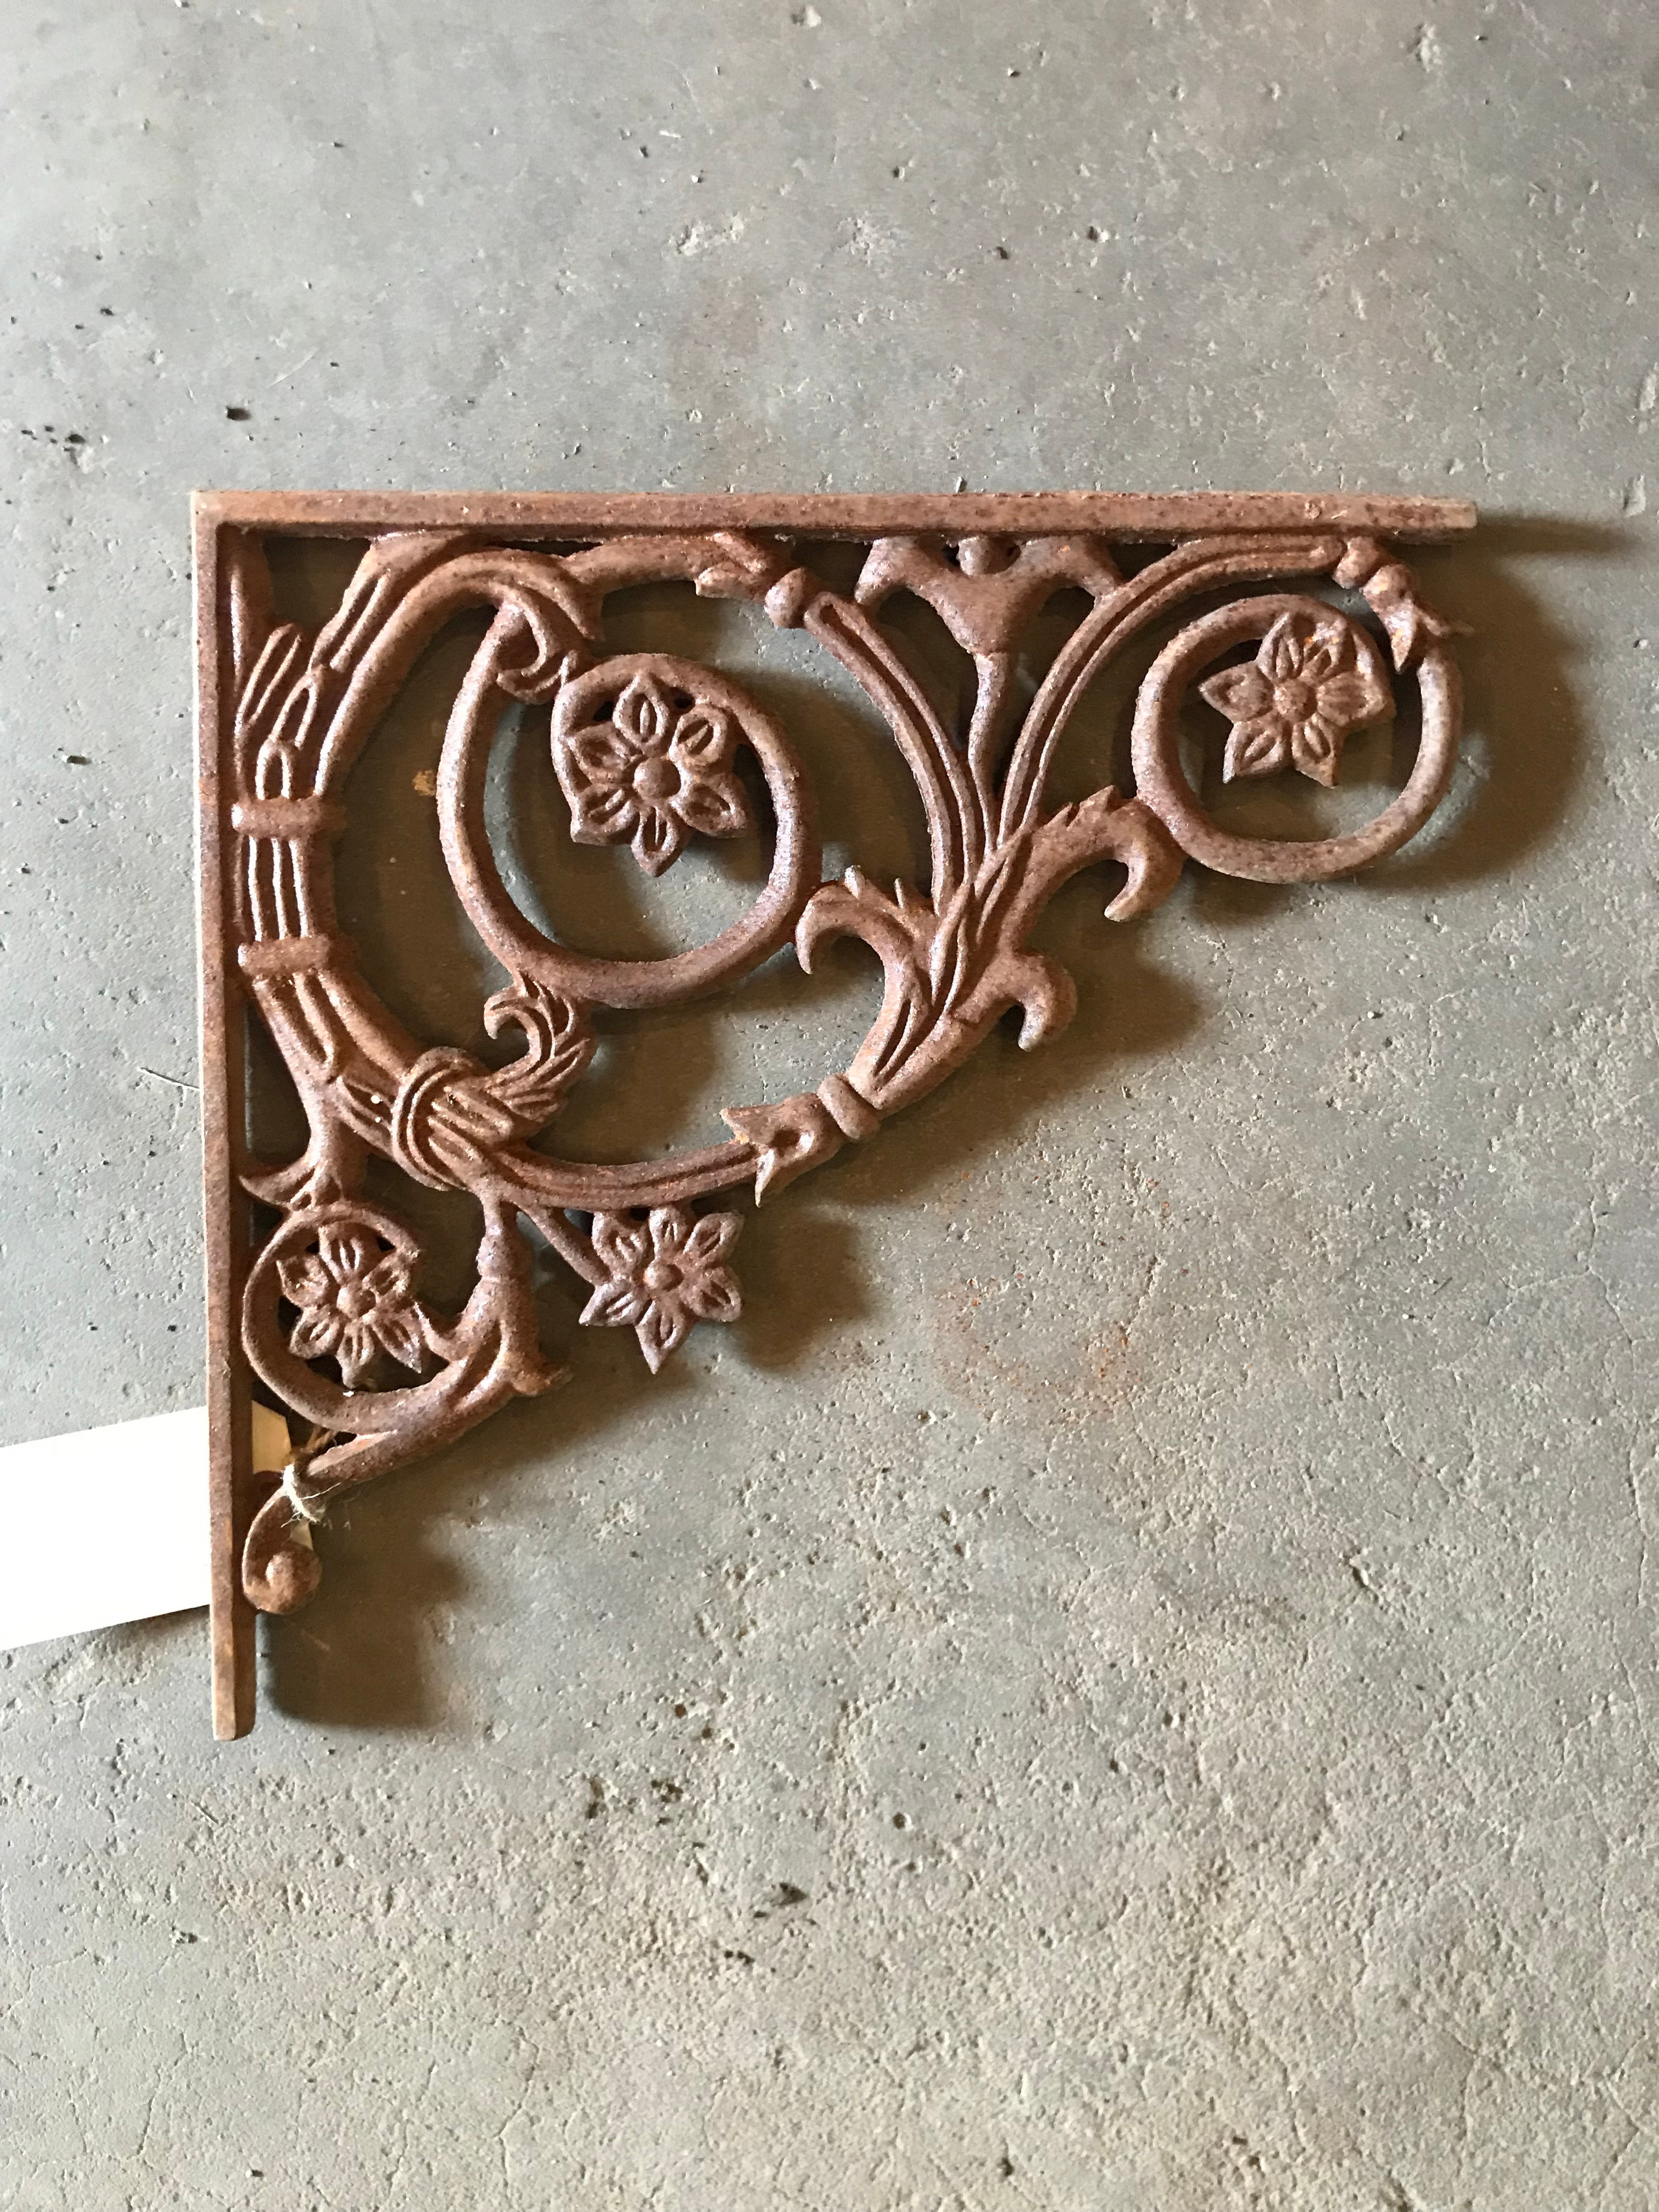 Cast iron replica bracket with vining flowers.